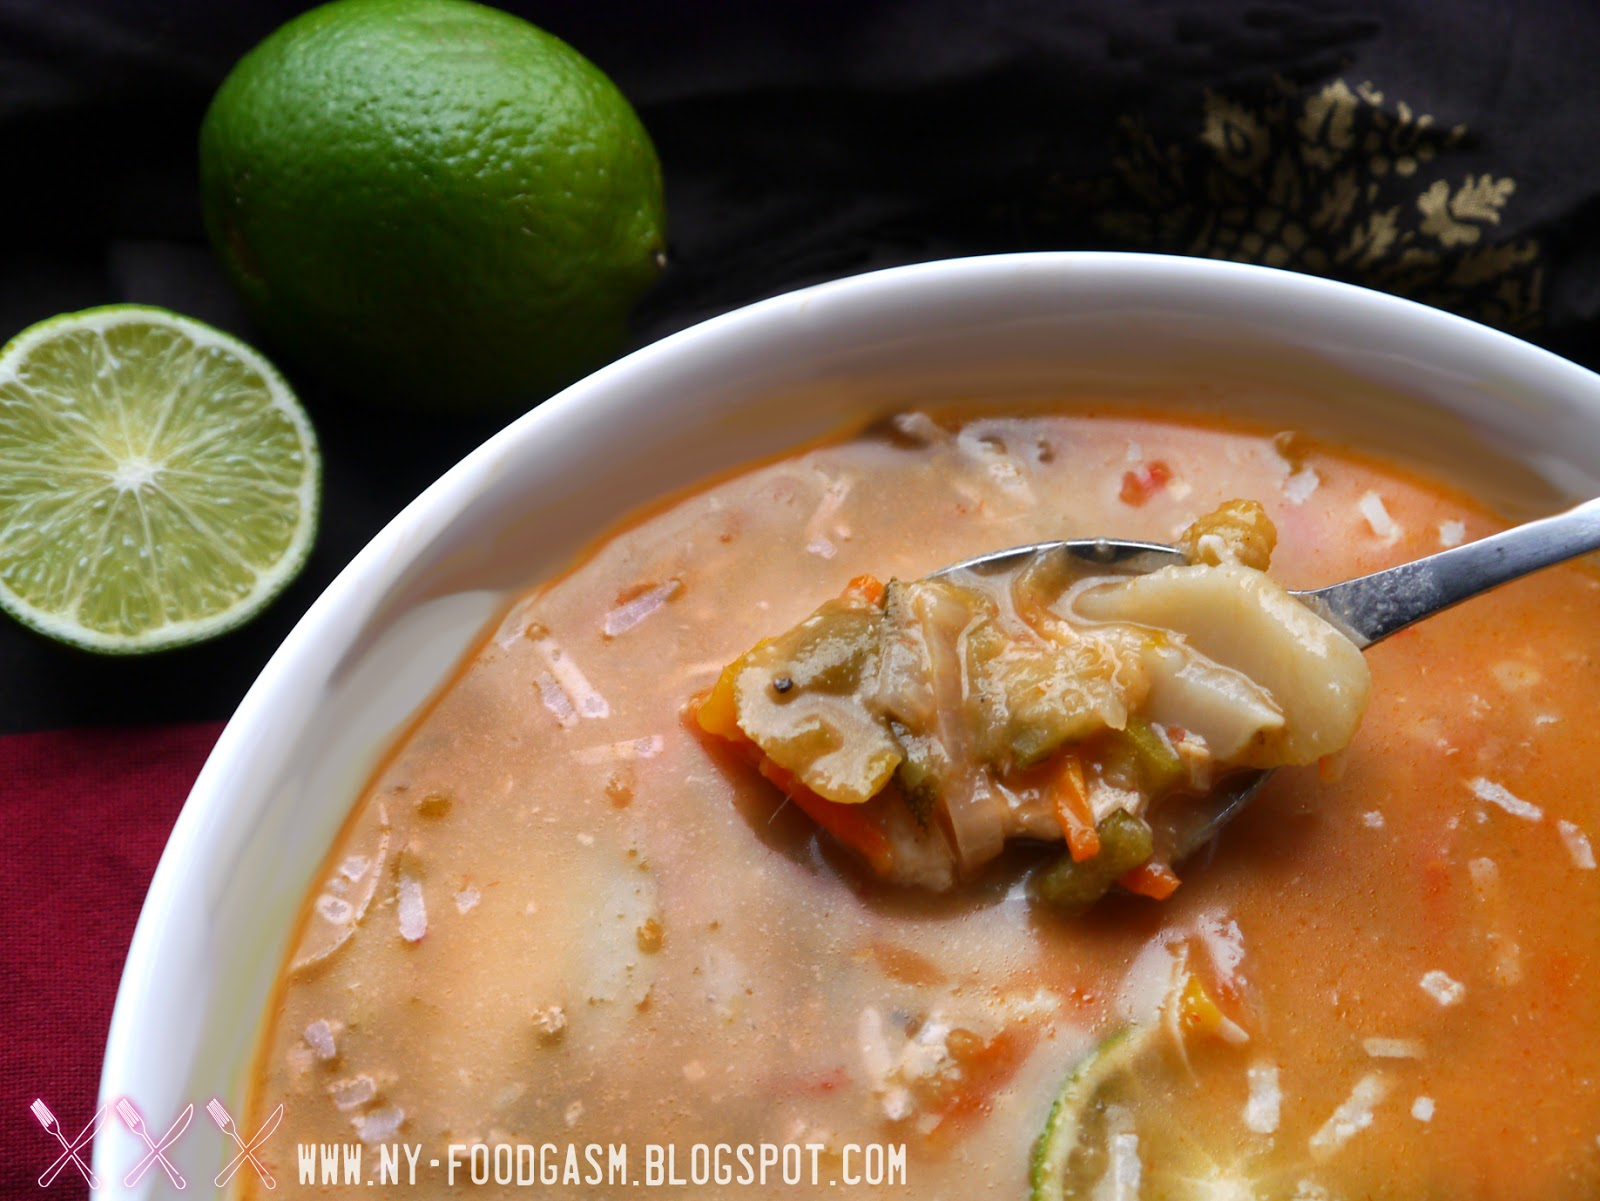 NY FoodGasm: Spicy Red Curry Coconut Chicken Soup